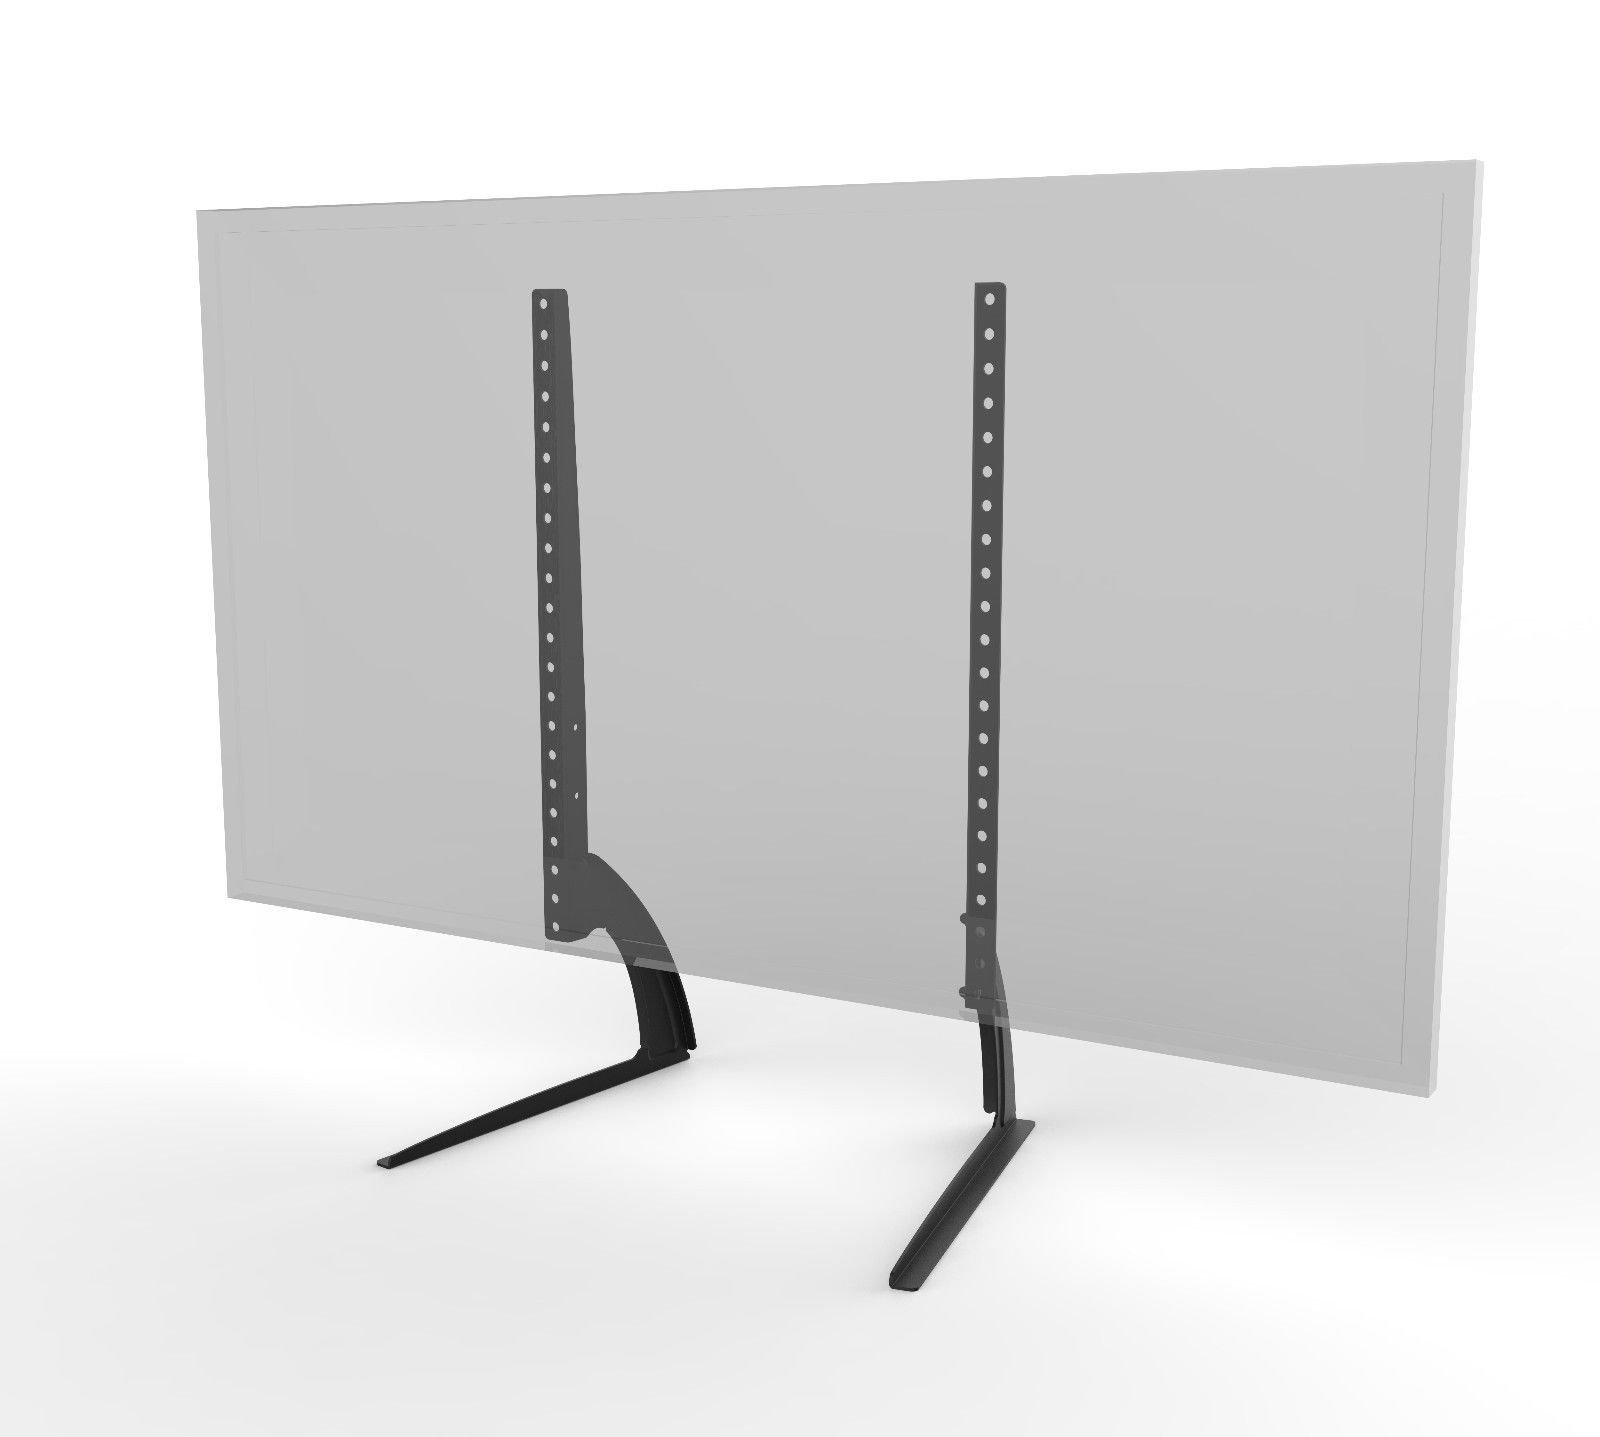 Universal Table Top TV Stand Legs for Vizio M65-C1 Height Adjustable